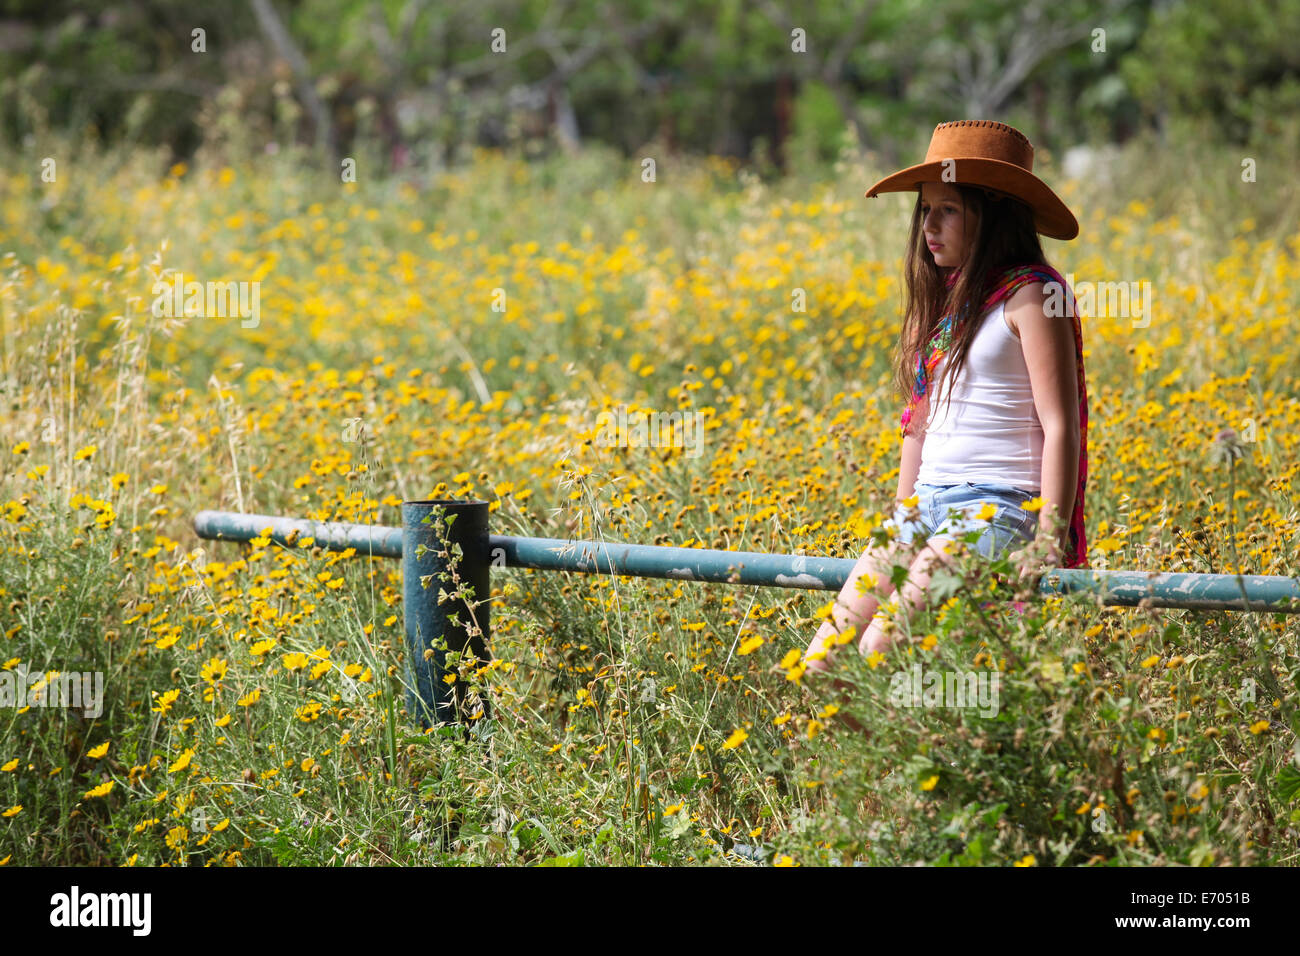 Sullen girl in cowboy hat sitting on fence in field - Stock Image